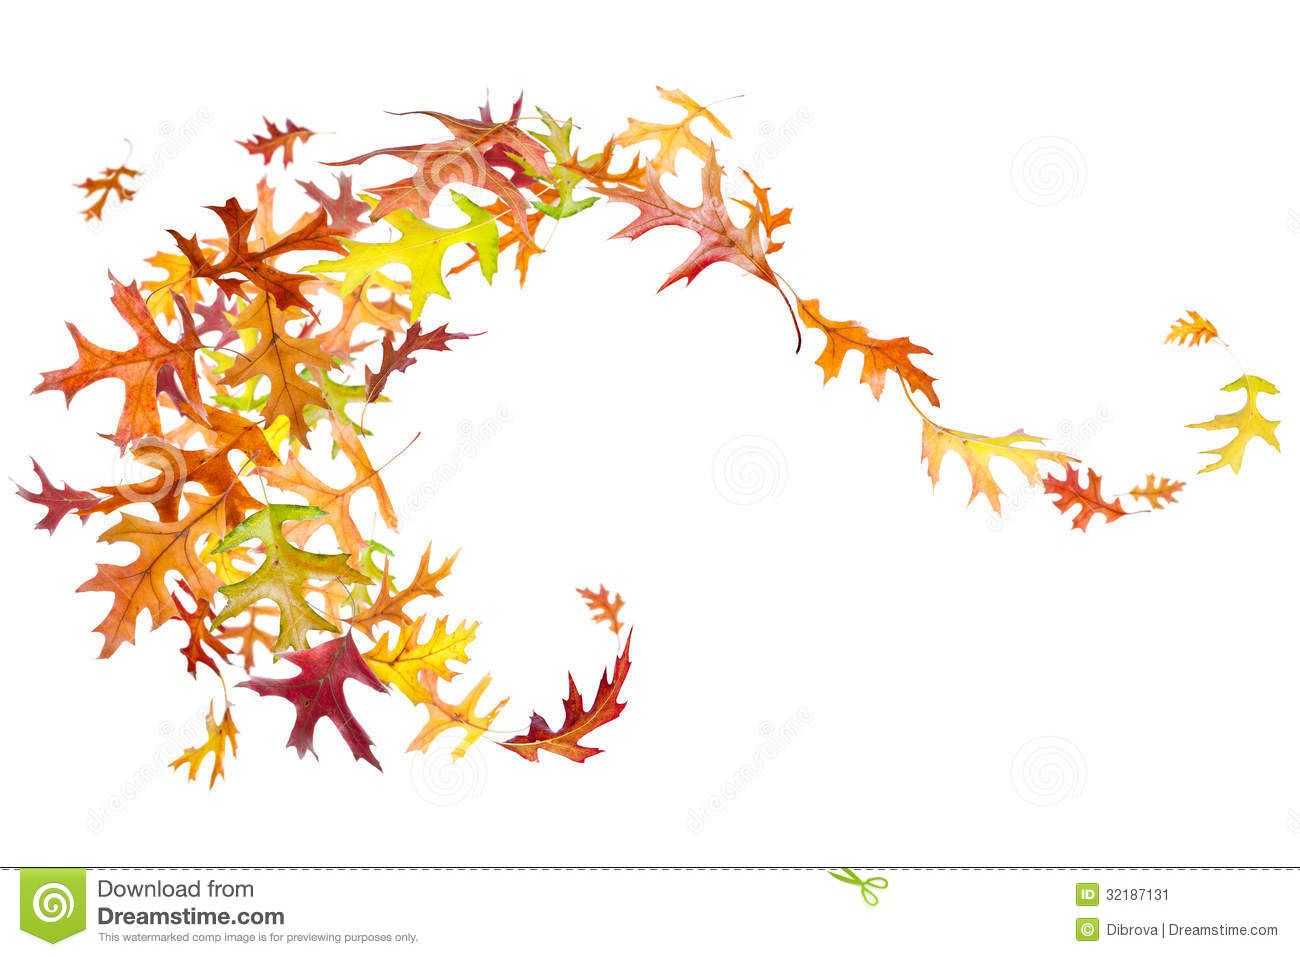 Leaves blowing in the wind clipart graphic free download Blowing Leaves Tattoo | Wind Swirl Clip Art ... | Tattoos | Fall ... graphic free download